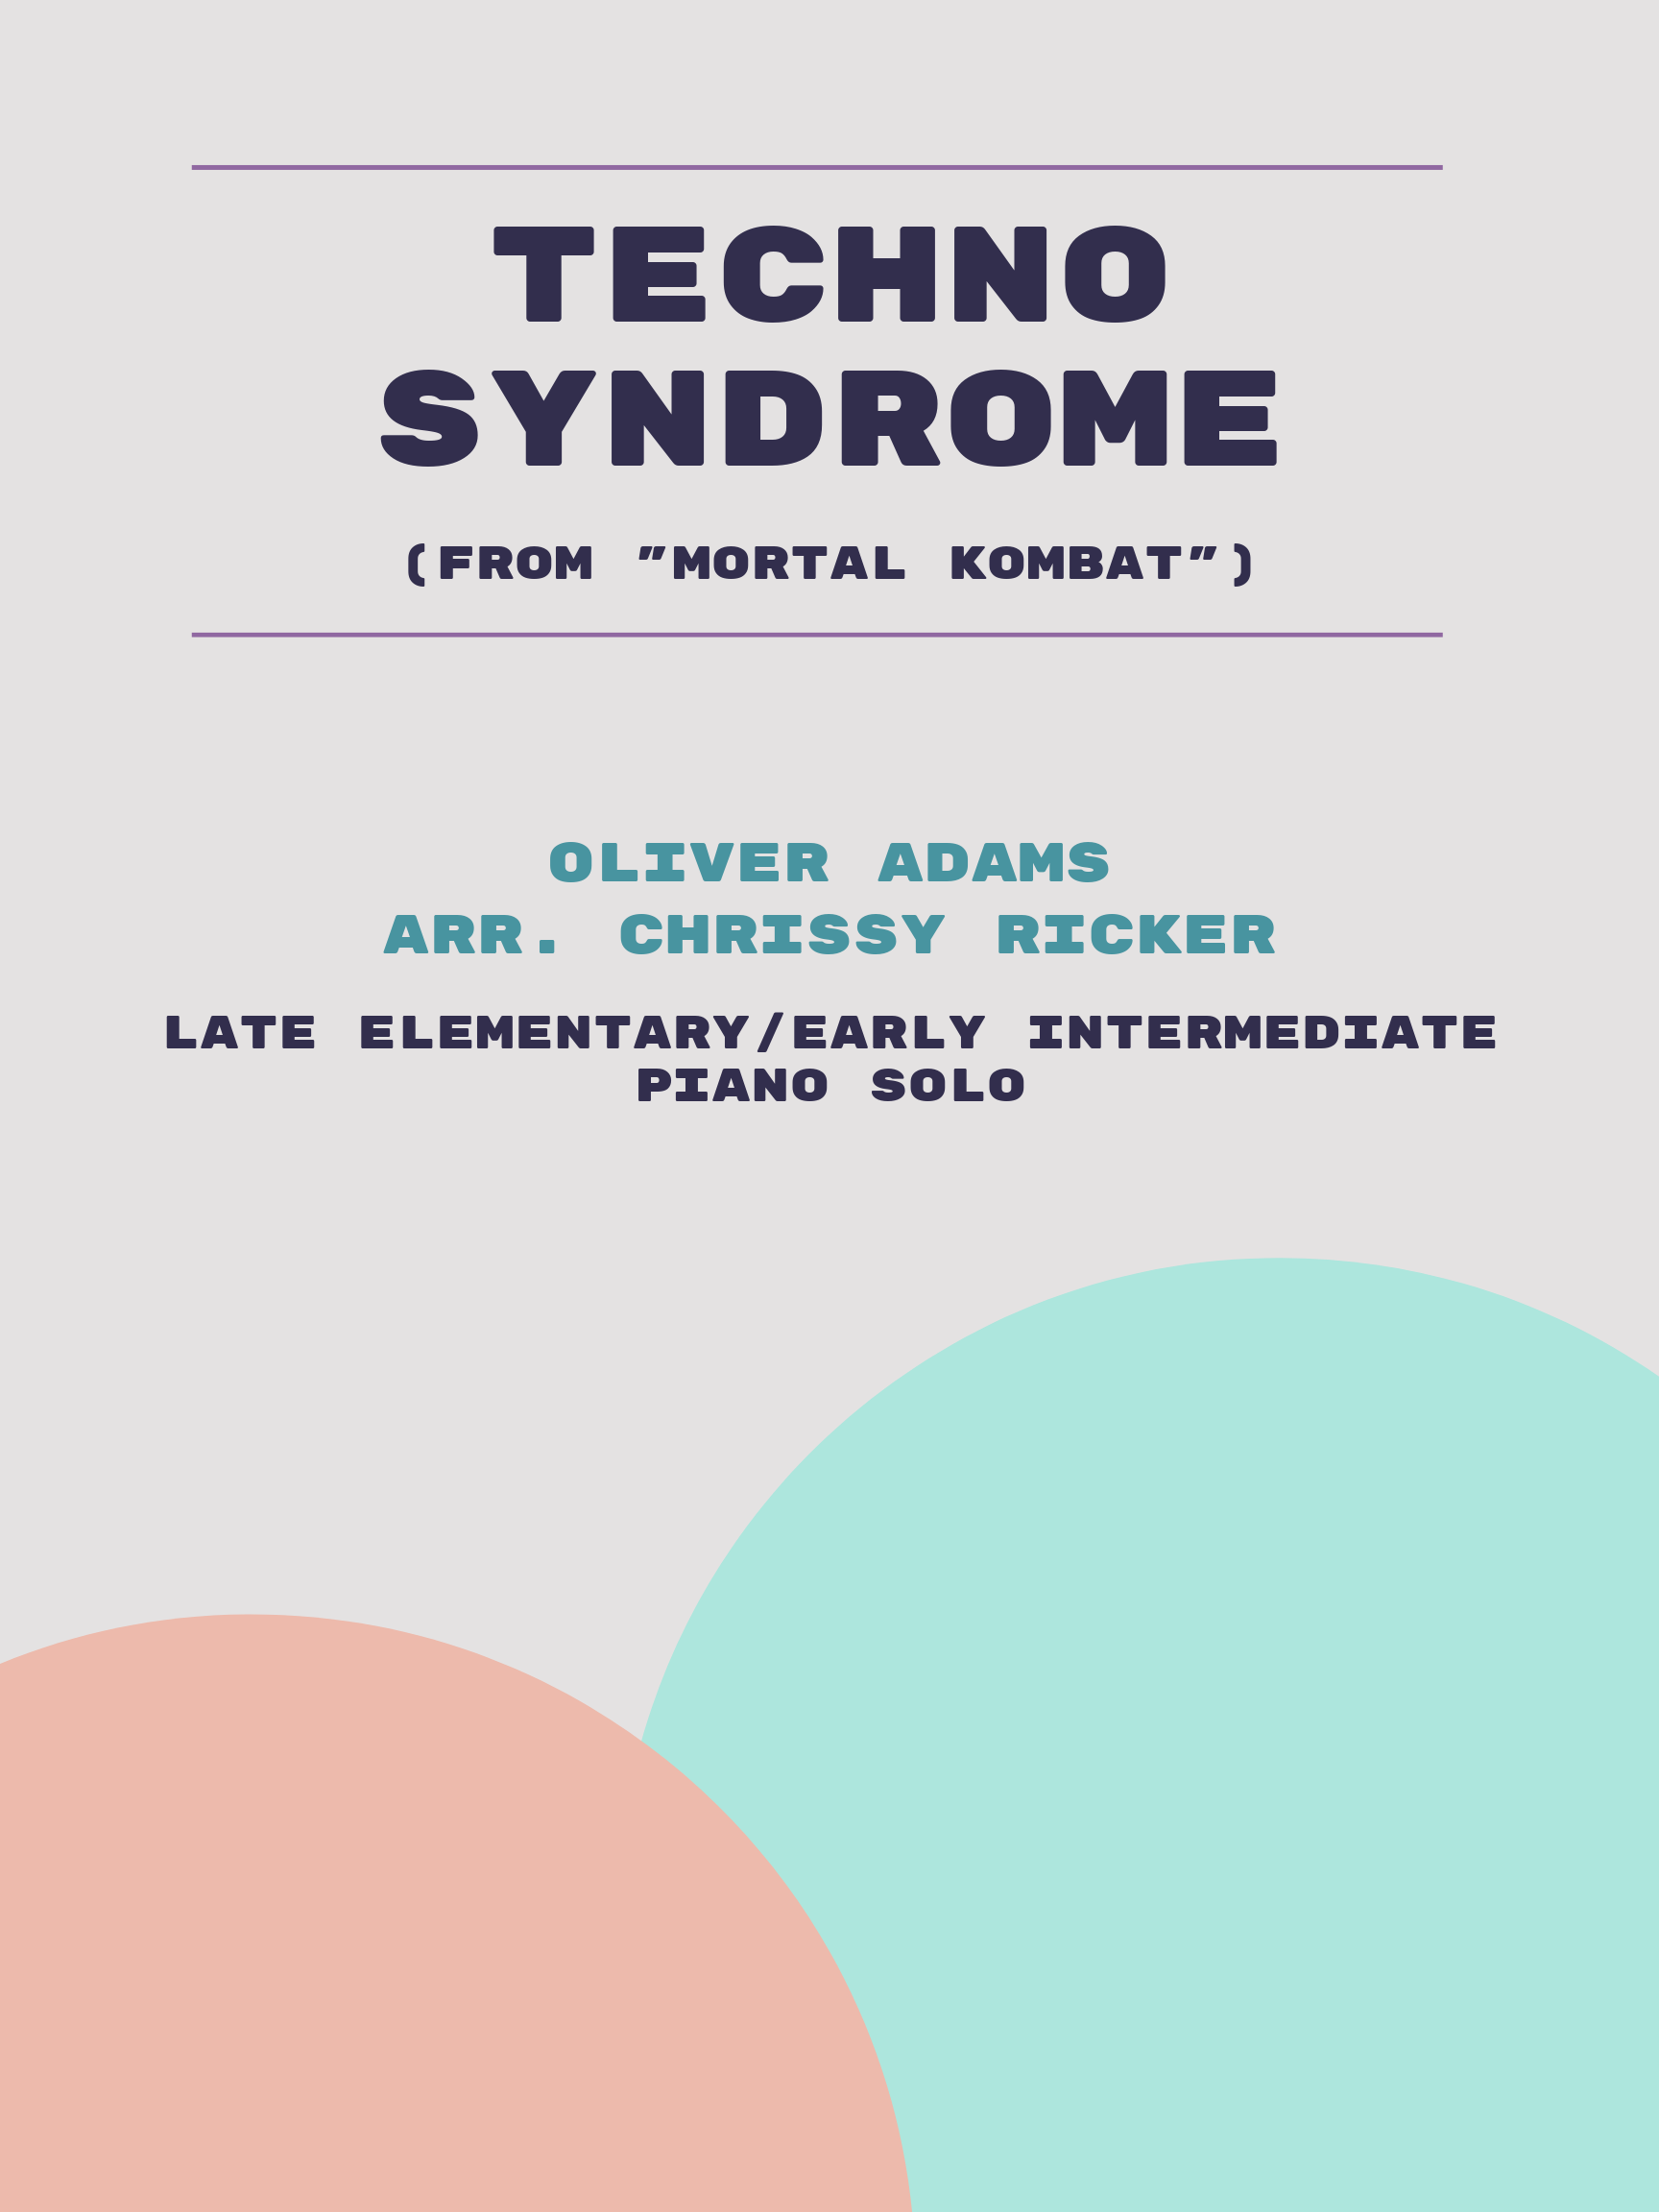 Techno Syndrome by Oliver Adams